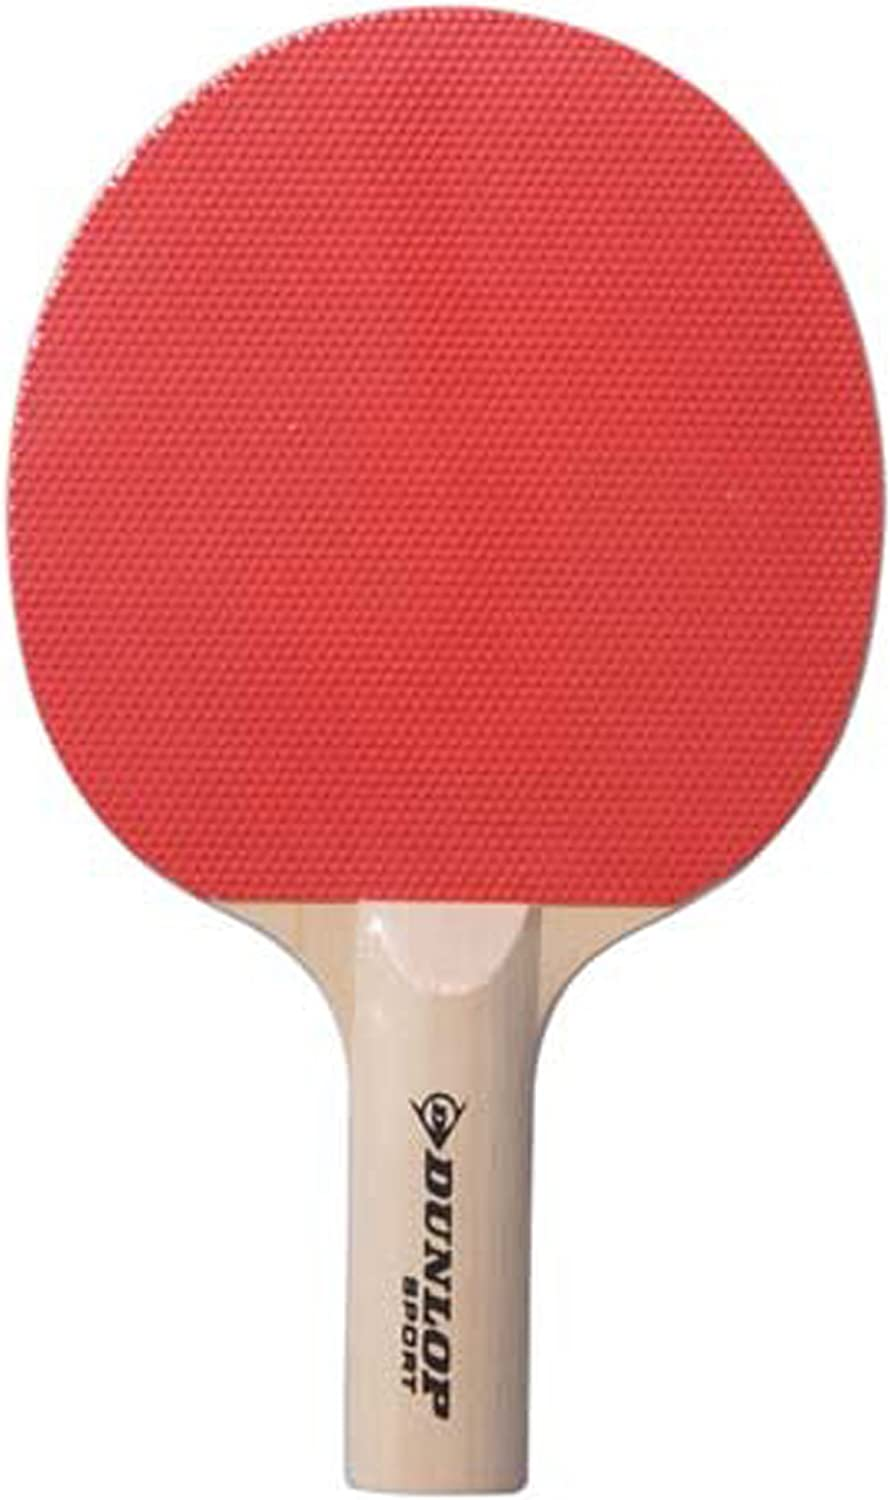 Amazon.com : DUNLOP Table Tennis Racket Ping Pong Paddle ...